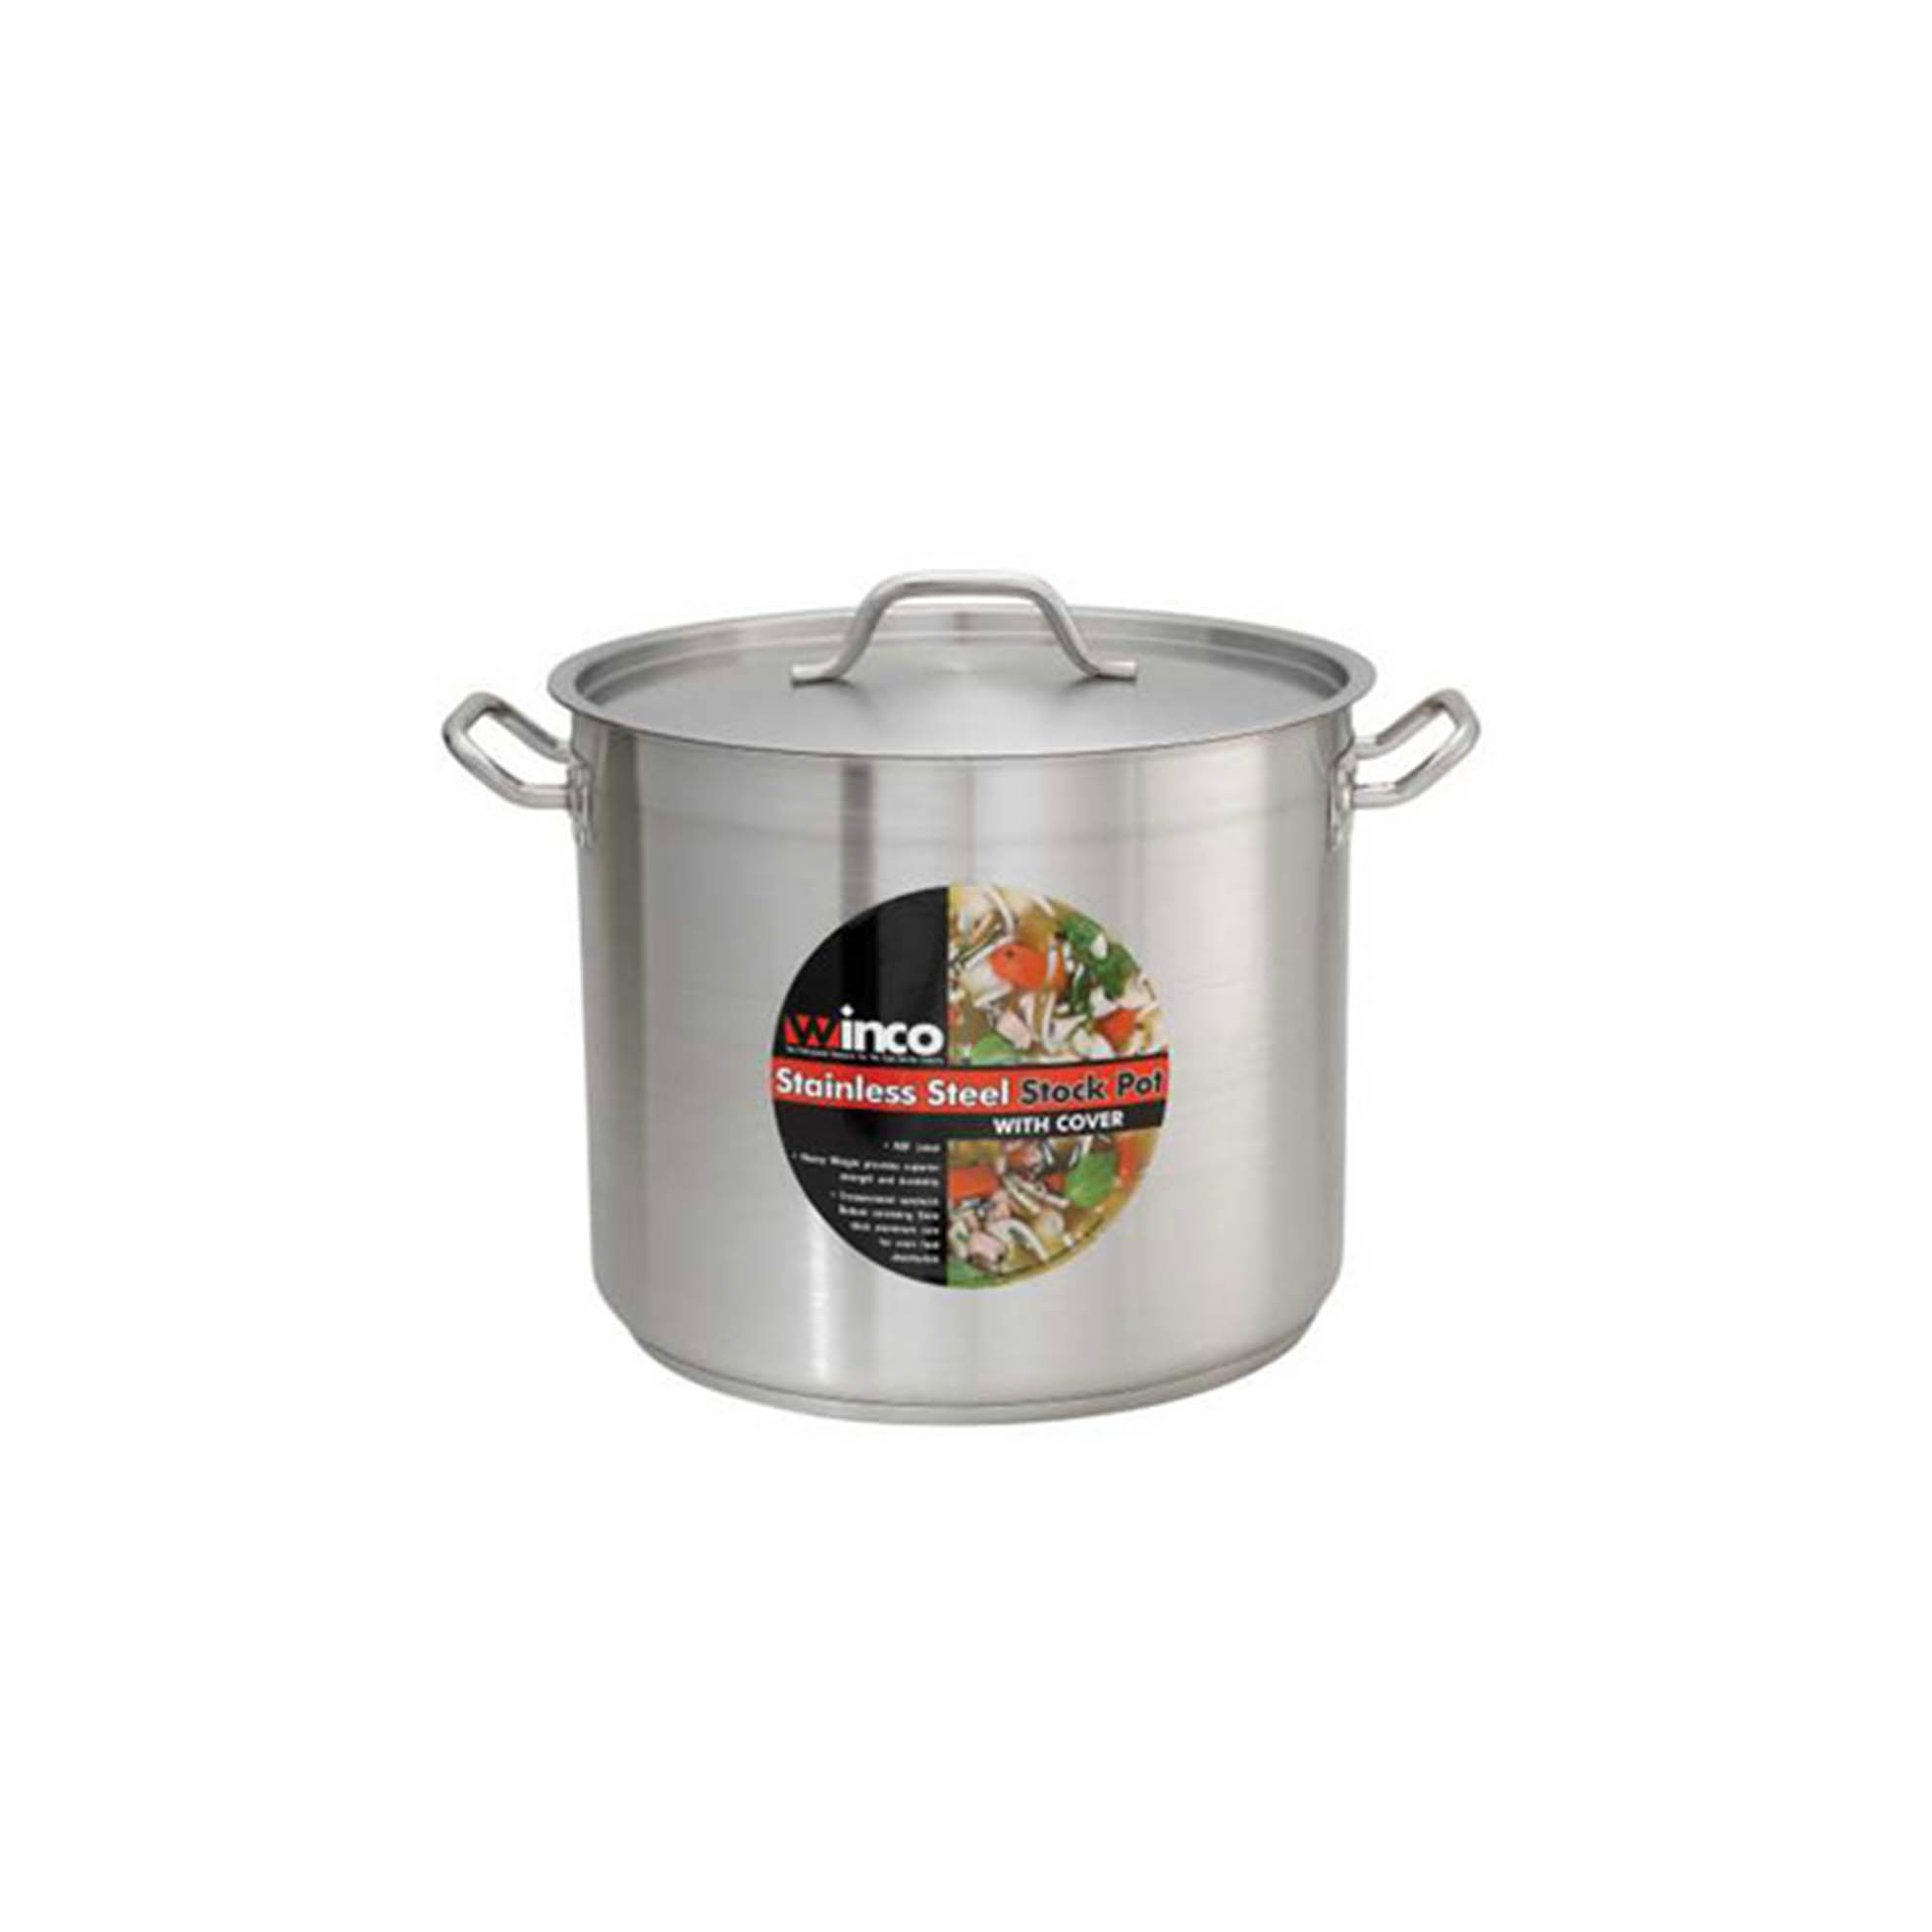 SST-12 Winco 12 Qt Induction Ready Stainless Steel Stock Pot w//Cover